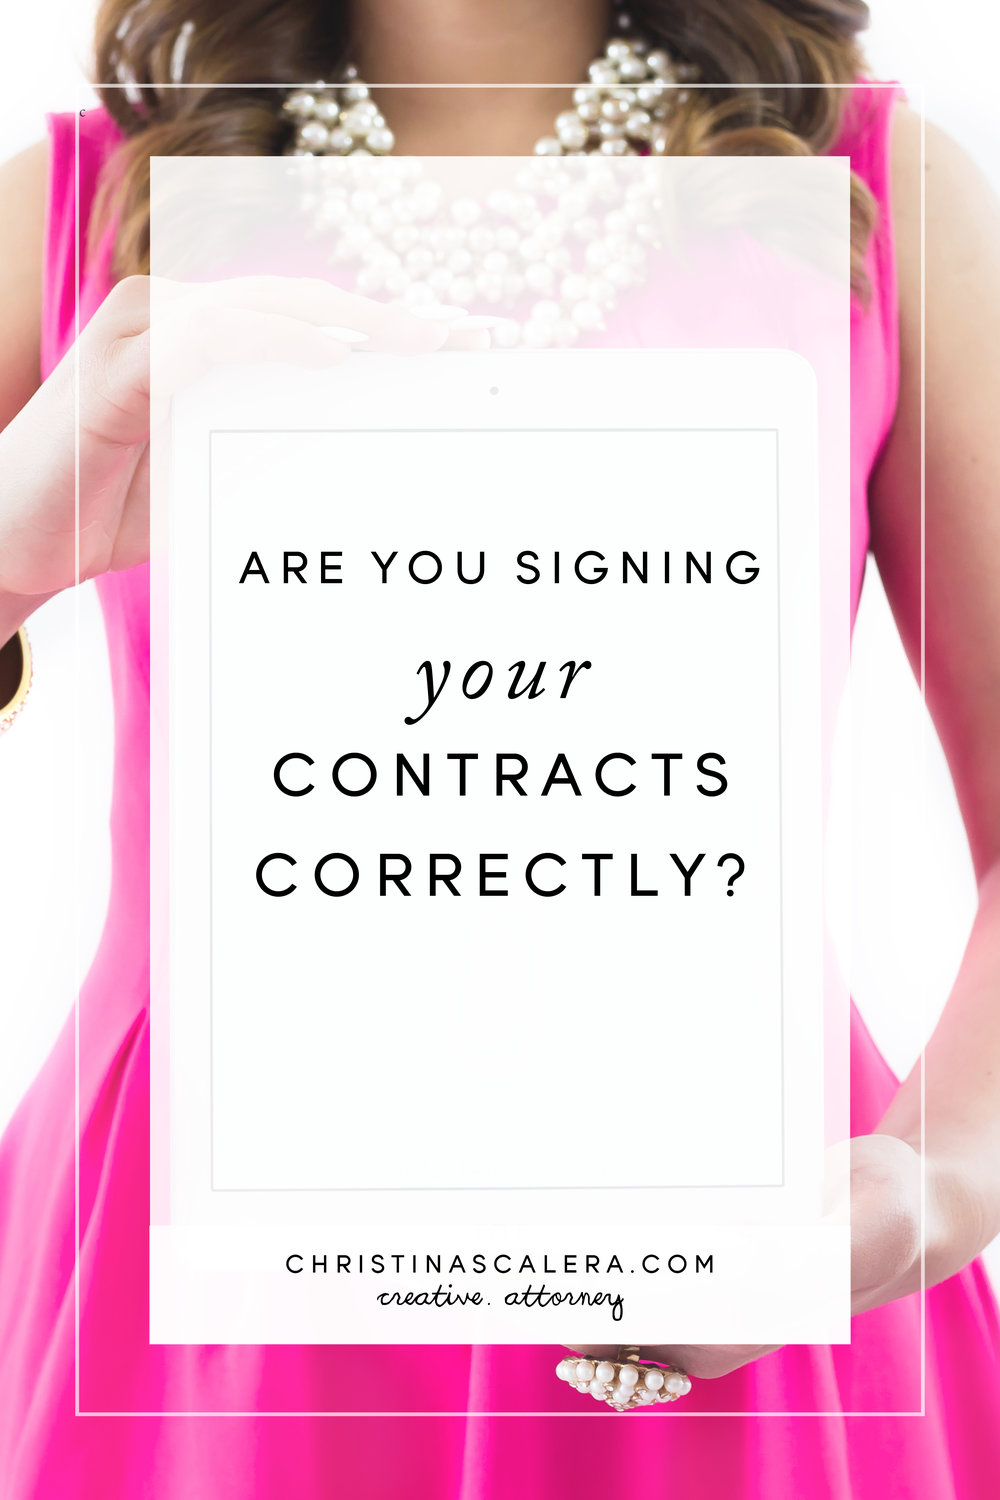 How do I sign my Contracts? Are you signing your contracts correctly?